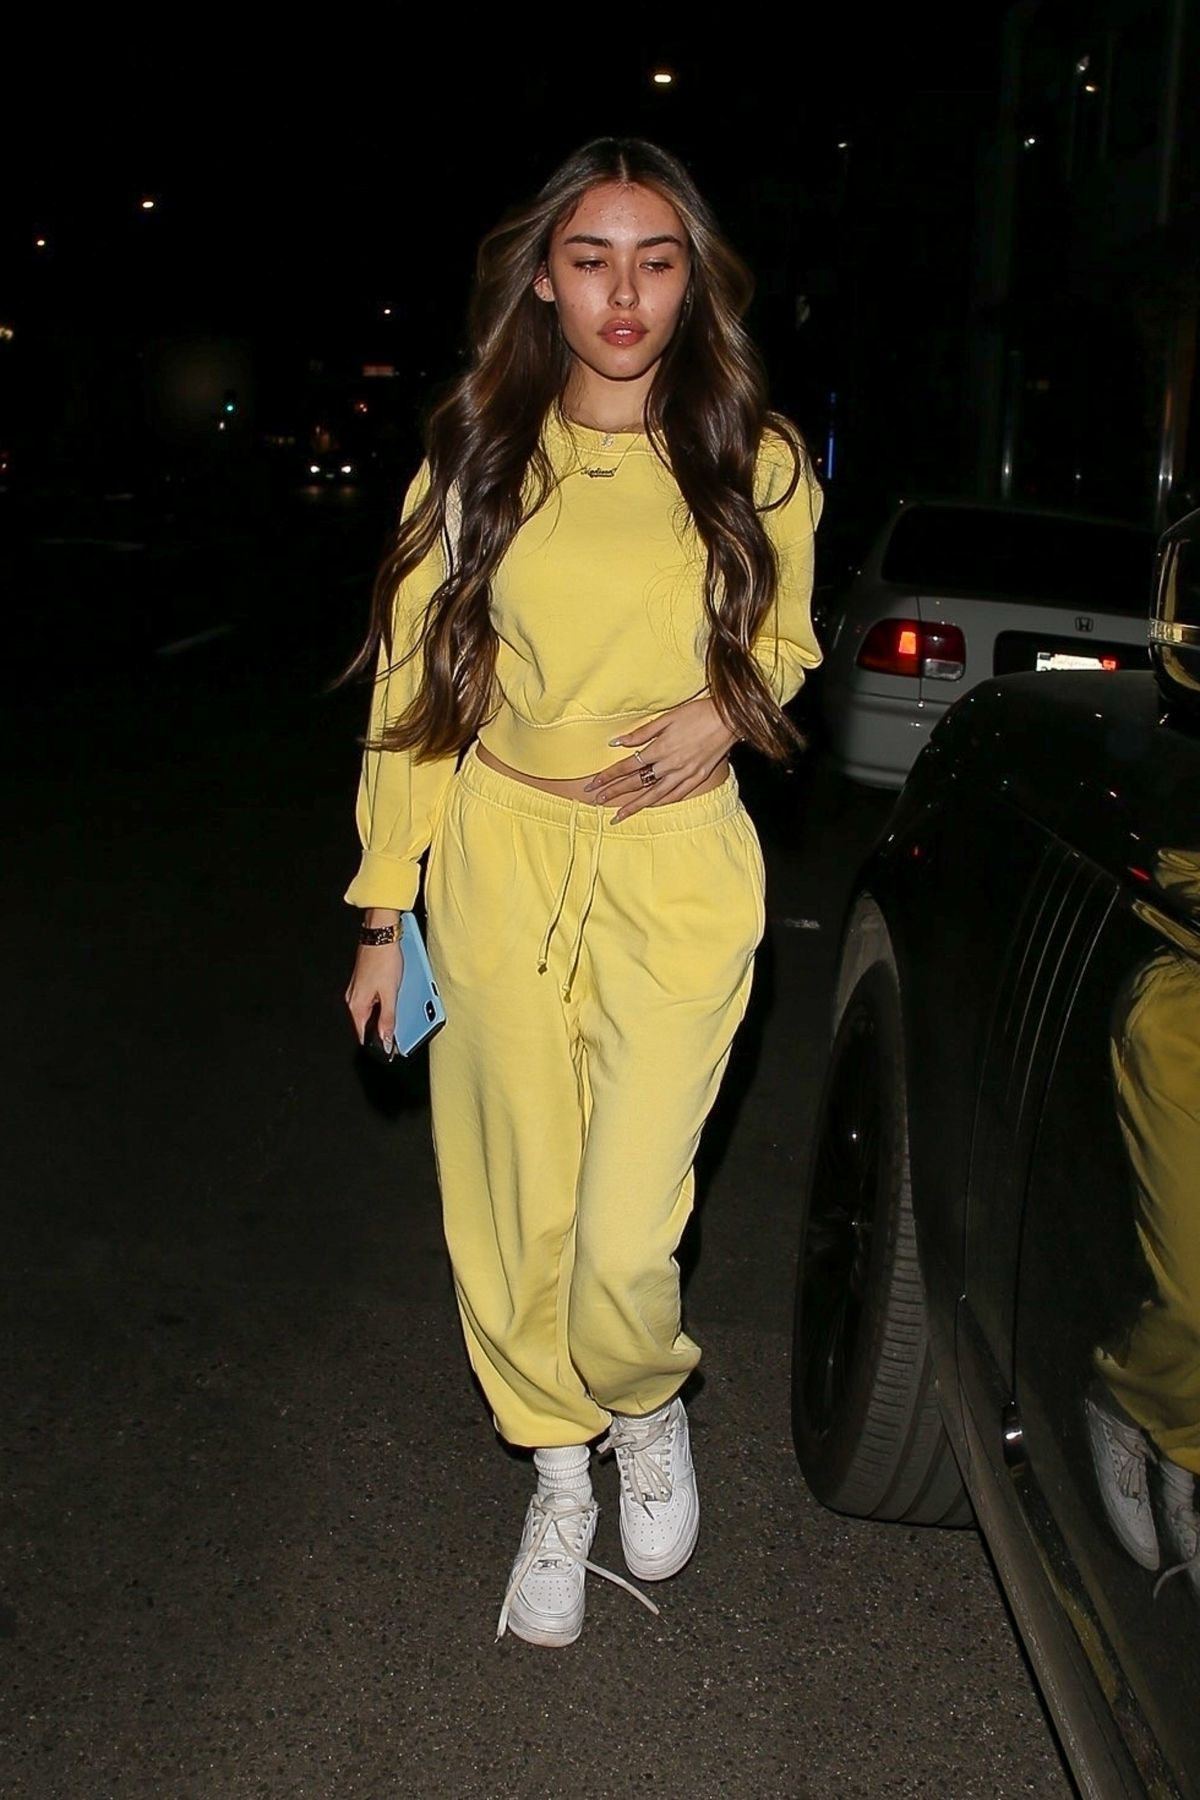 Madison Beer Leaves Alen M Salon in West Hollywood 02/26/2020. #fashion #outfits #celebrityfashion #celebritystyle  #celebritystreetstyle #streetstyle #streetfashion #models #hollywood #hollywoodlife